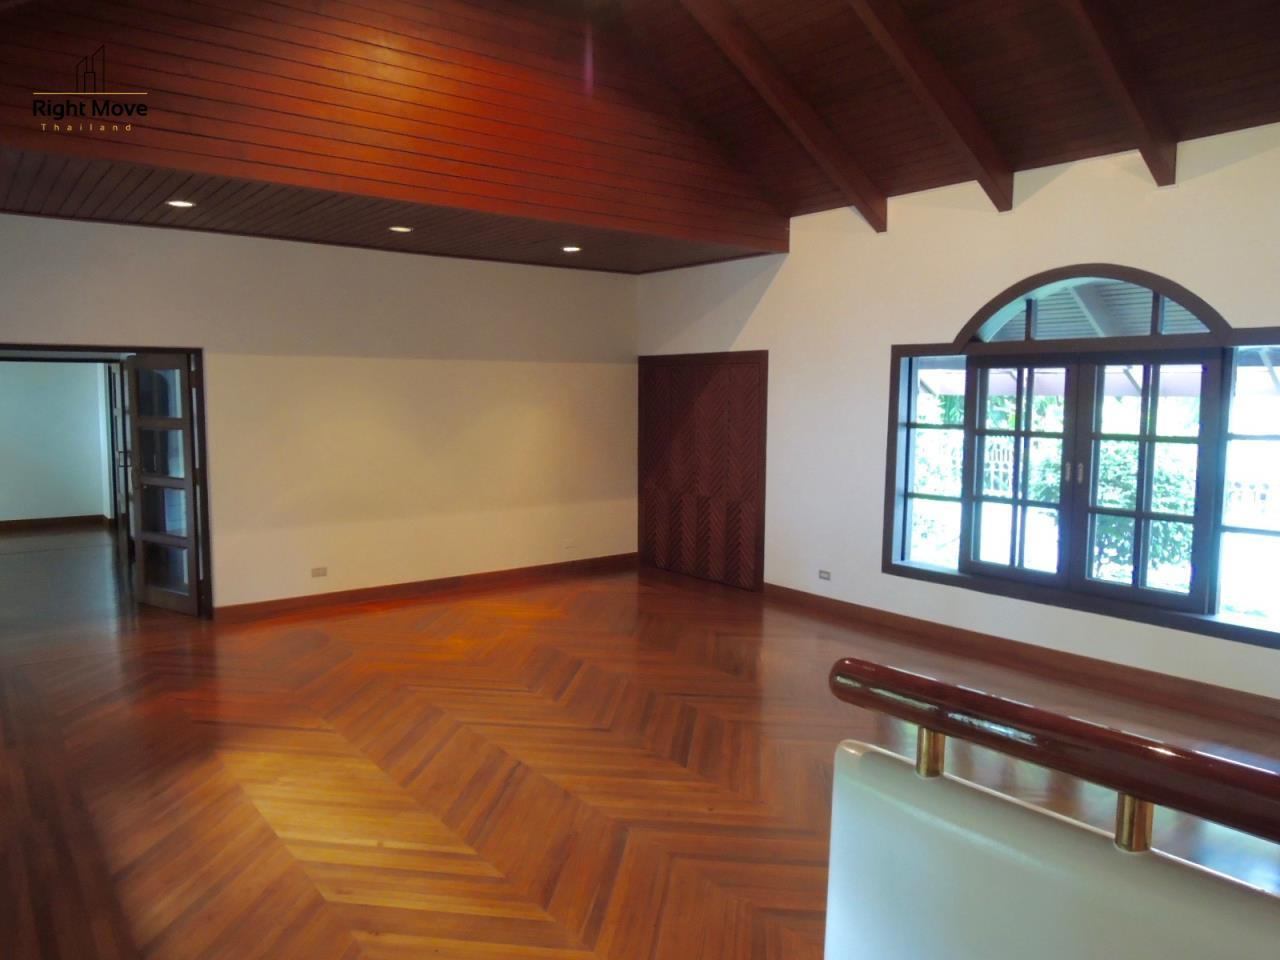 Right Move Thailand Agency's HR663 House With Private Pool For Rent 350,000 THB 4 Bedrooms 1000 Sqm 8